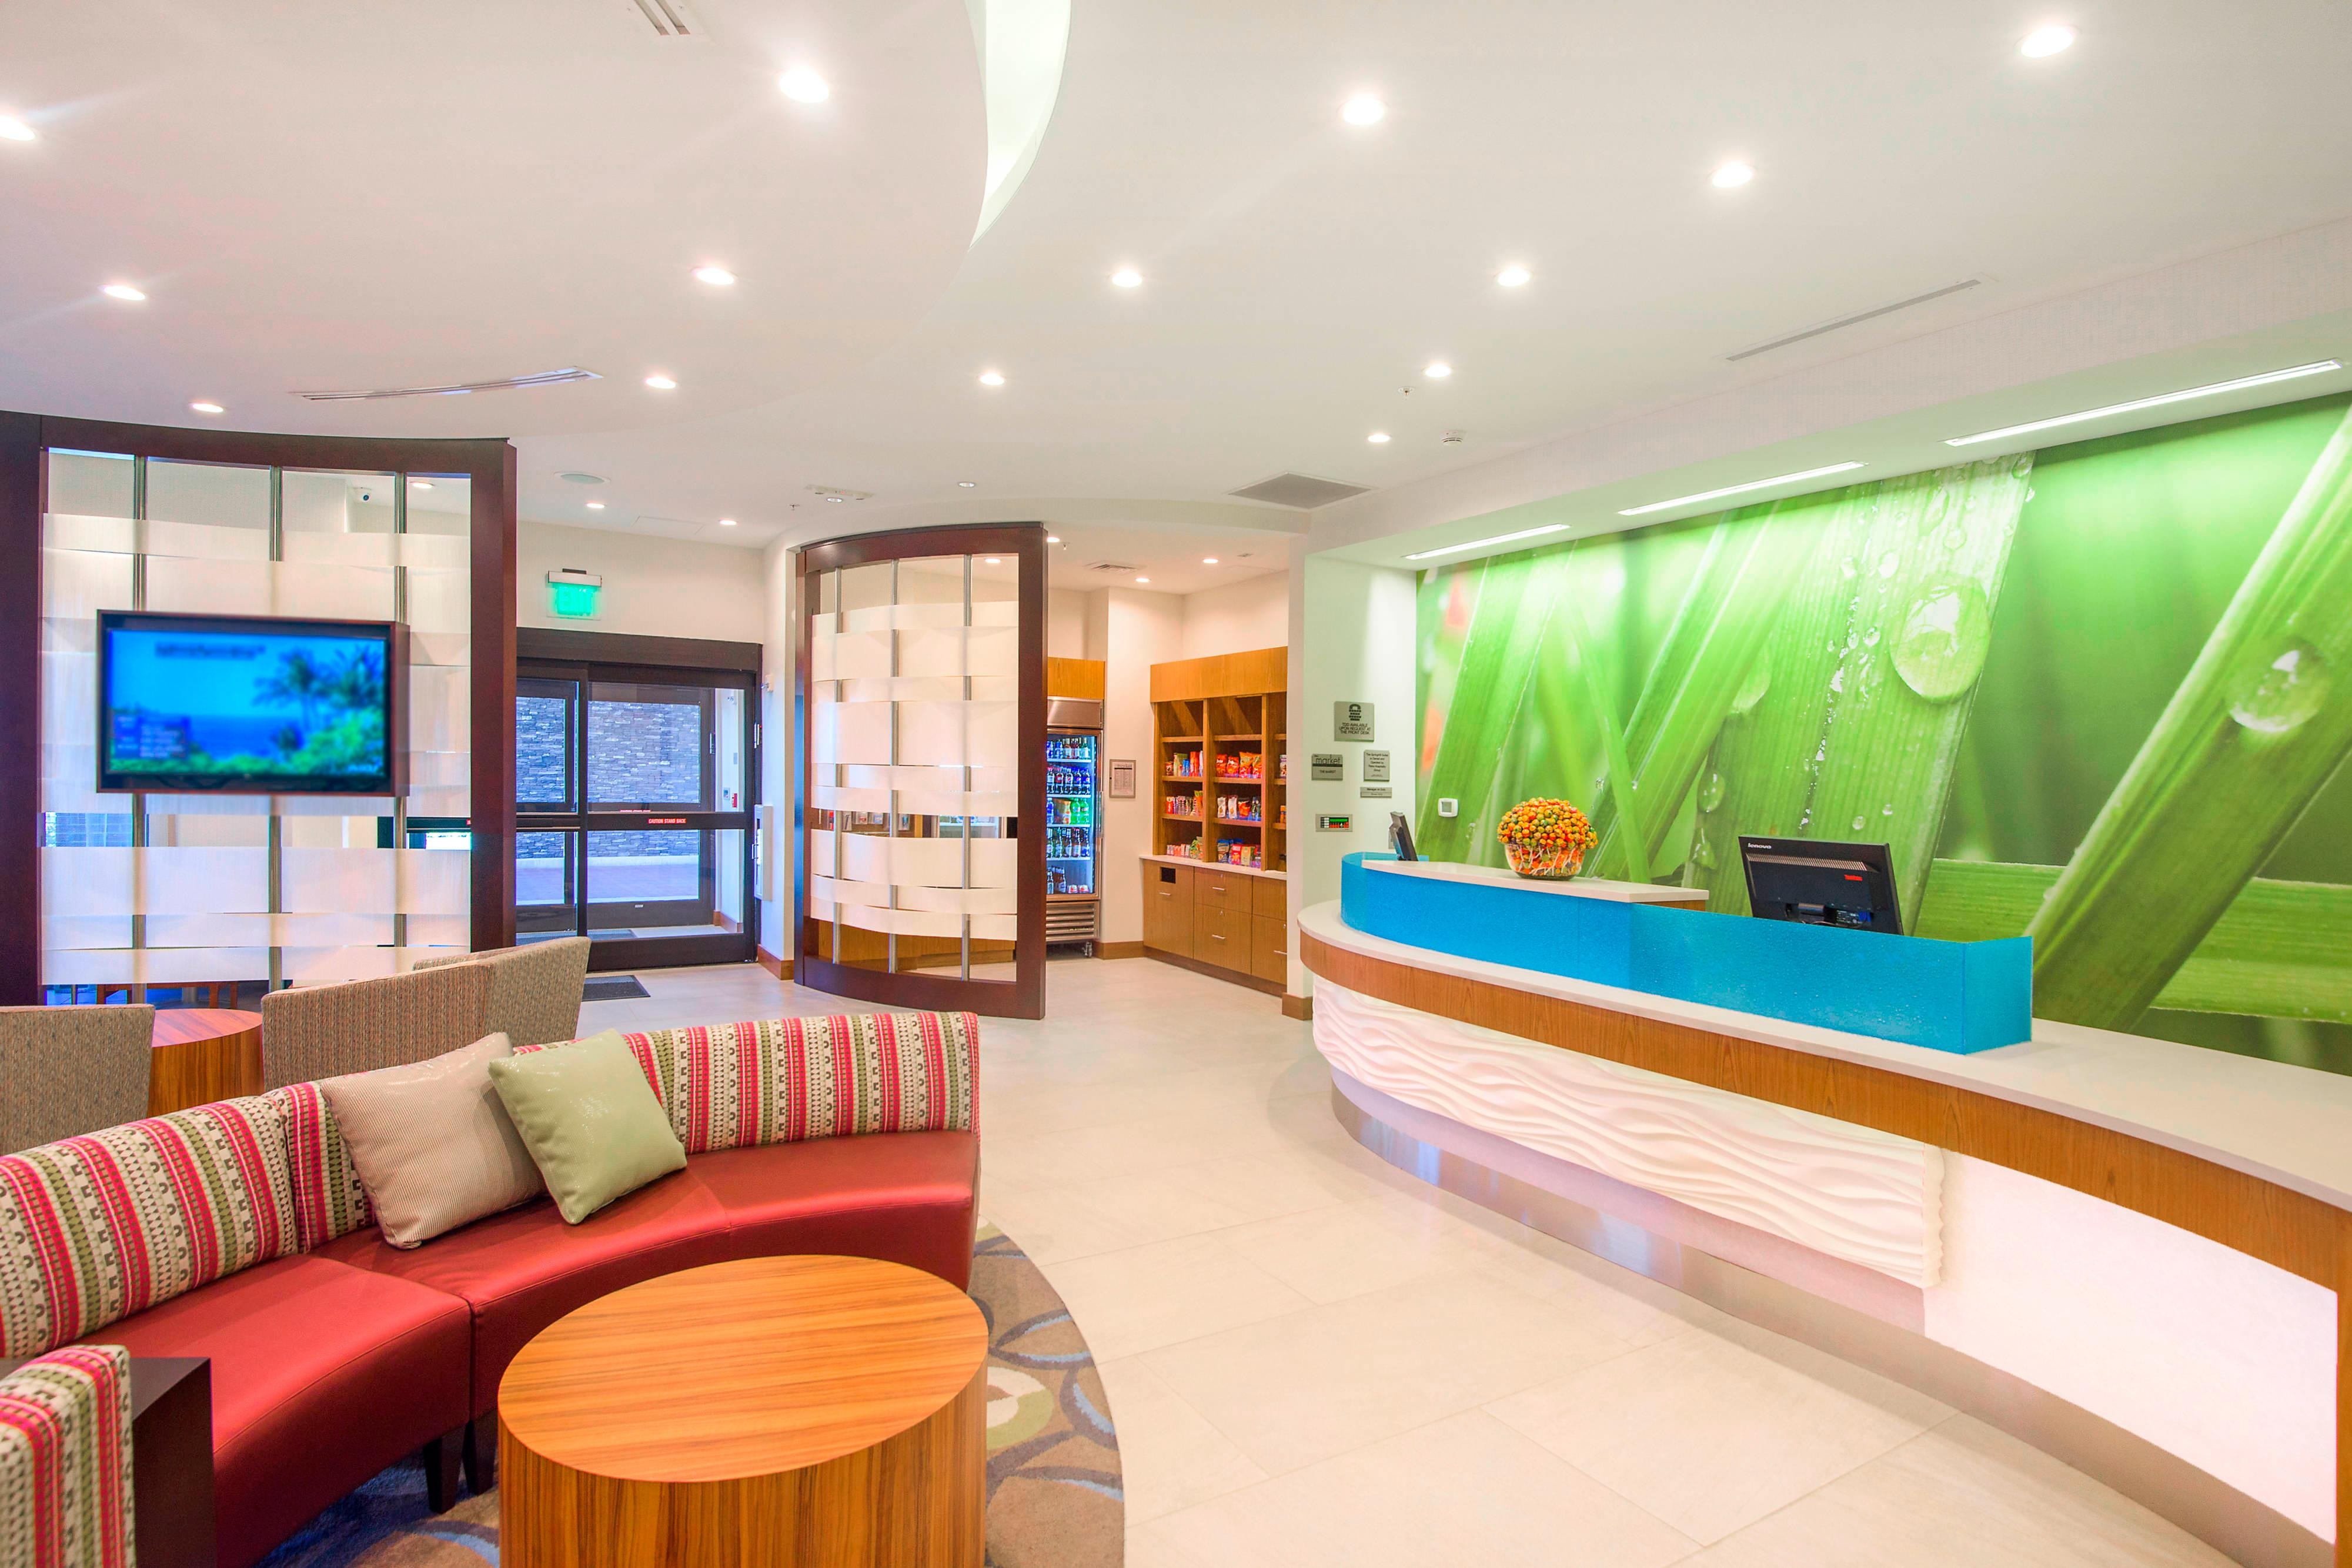 Guest Services at the Front Desk